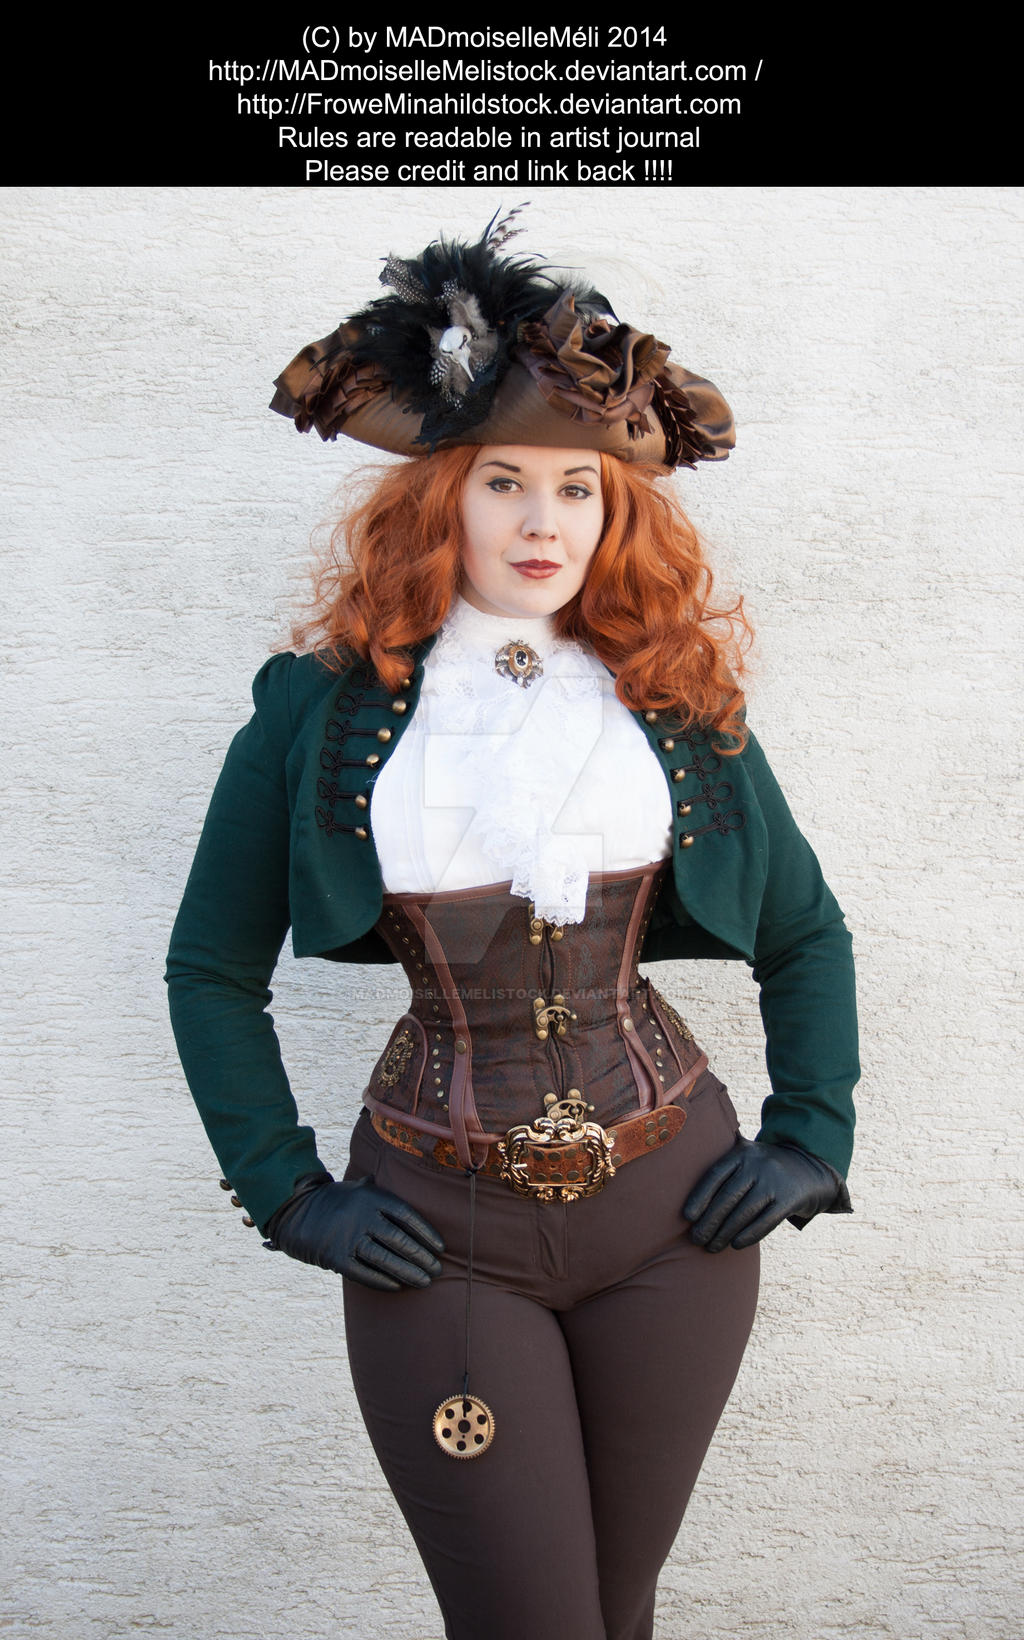 Steampunk Pirate Stock 001 by MADmoiselleMeliStock